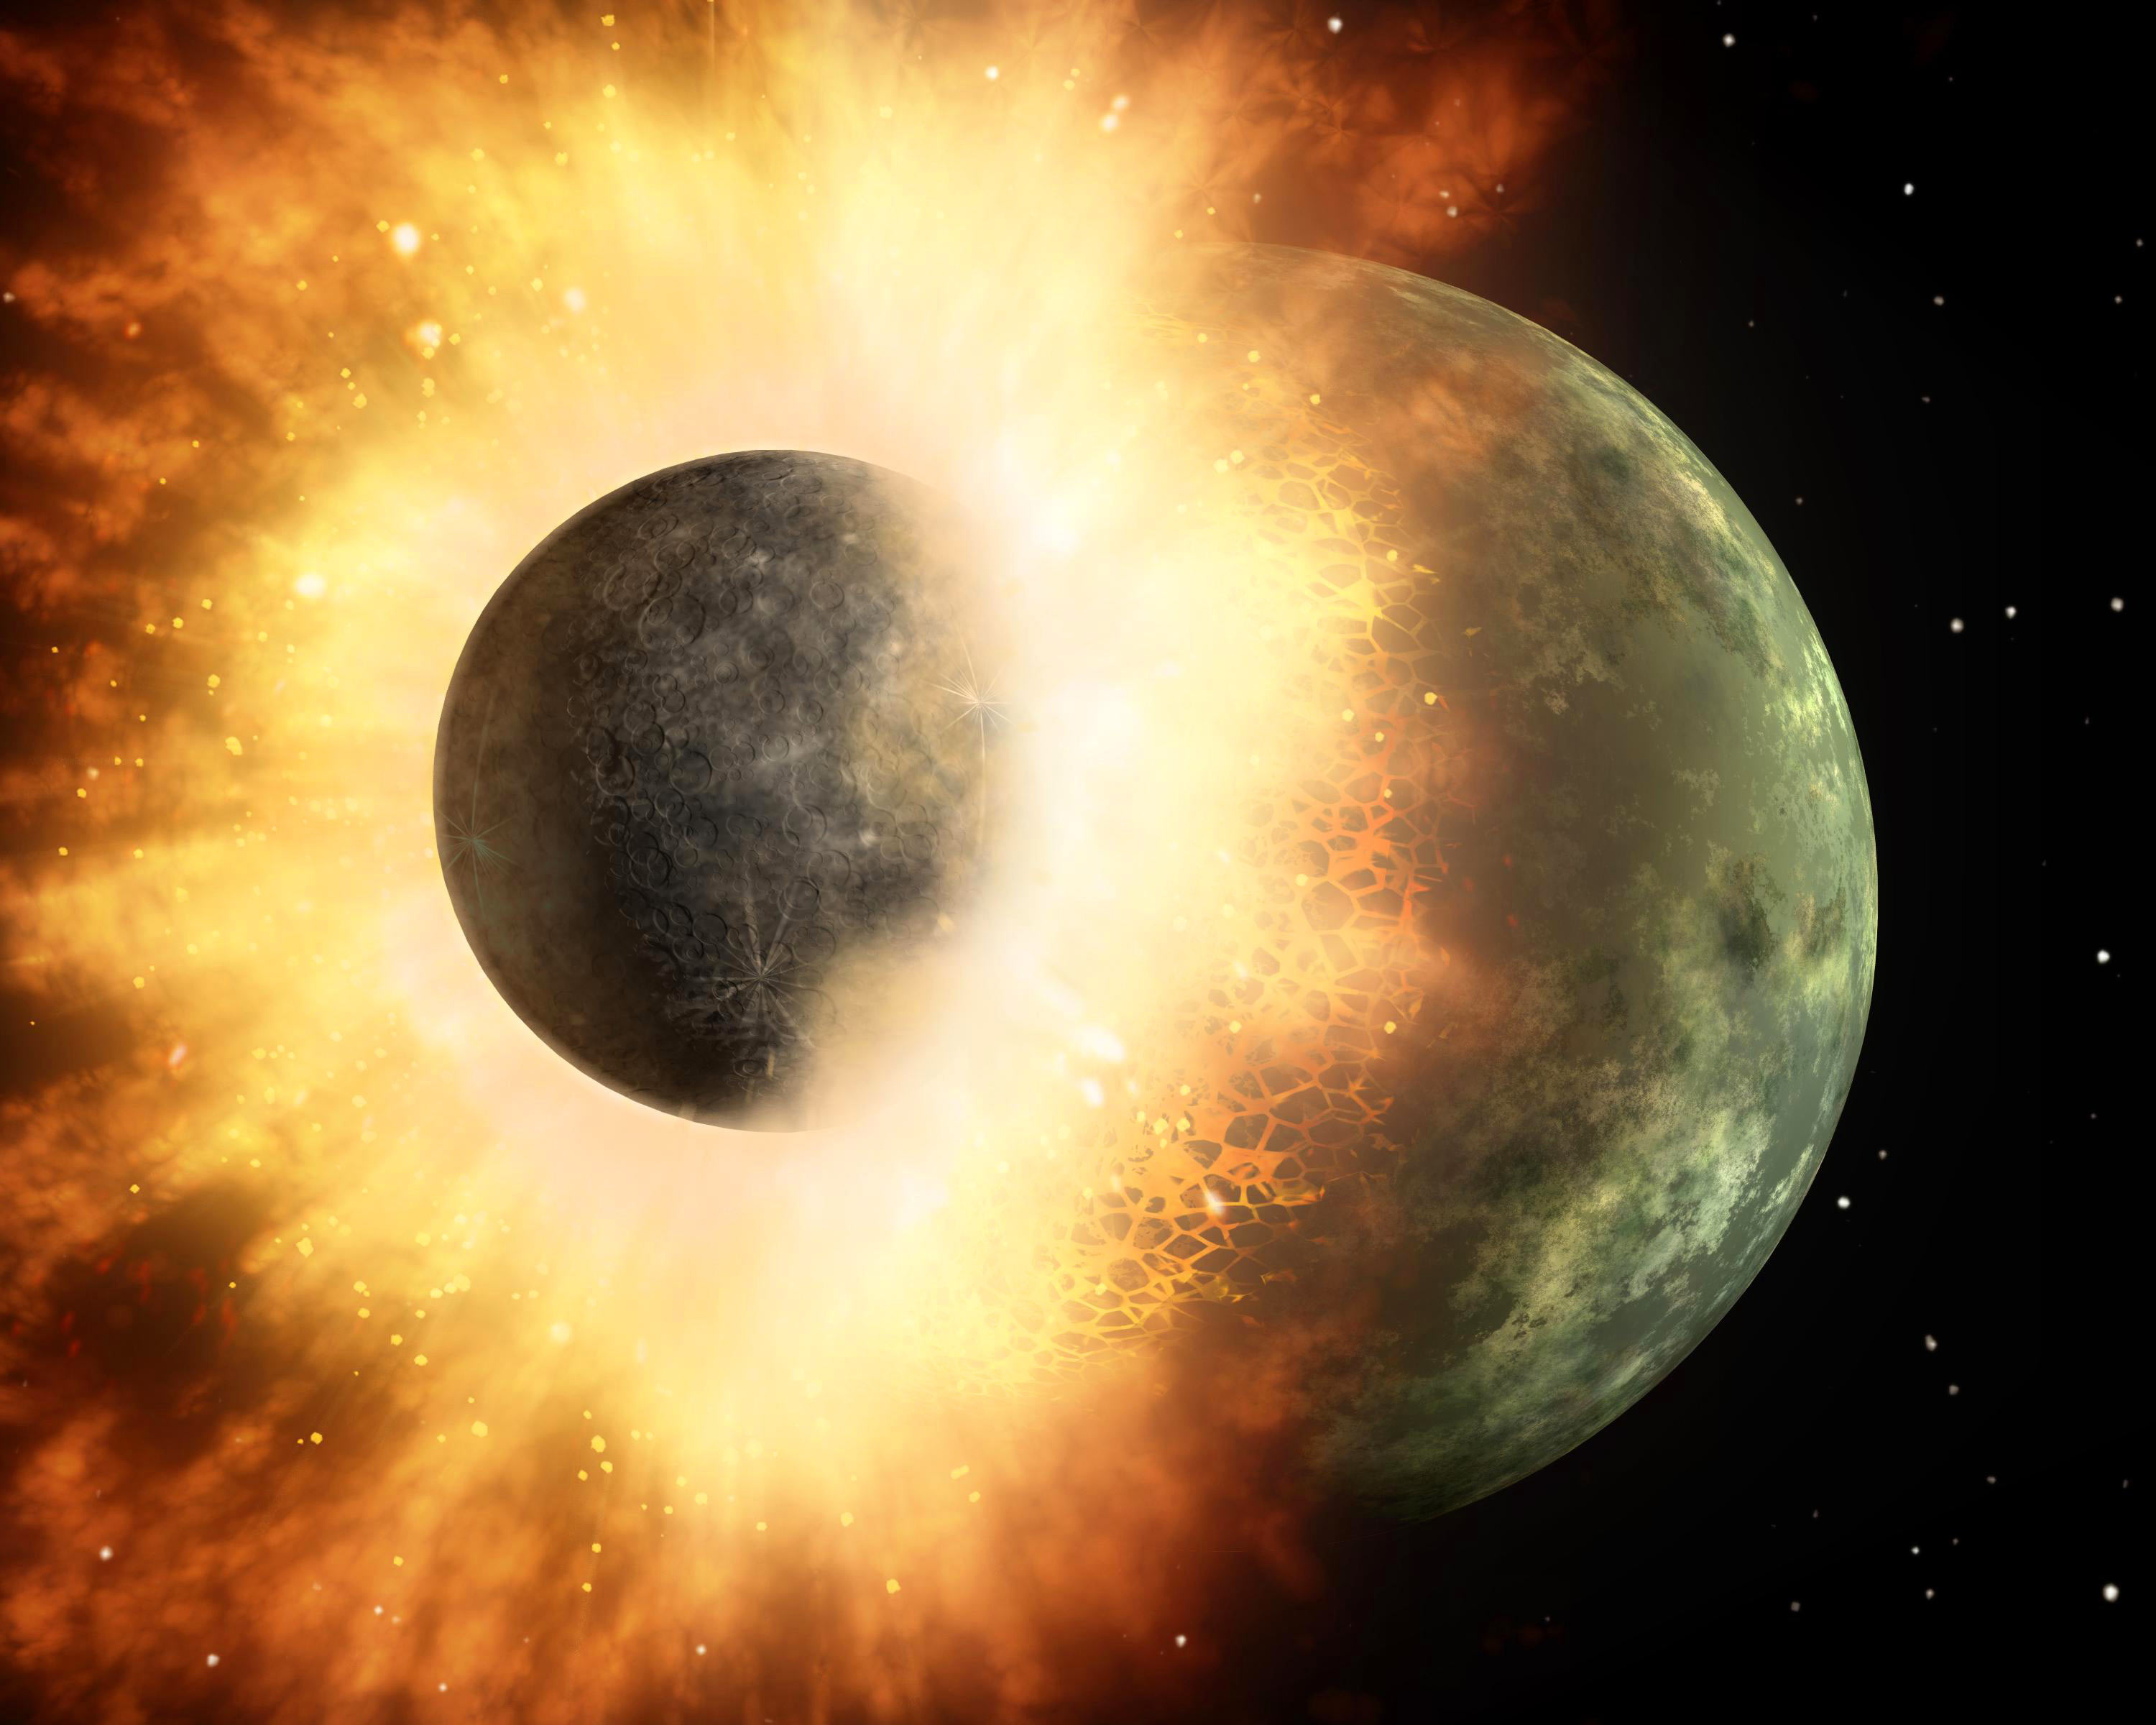 When and How Did the Moon Form?